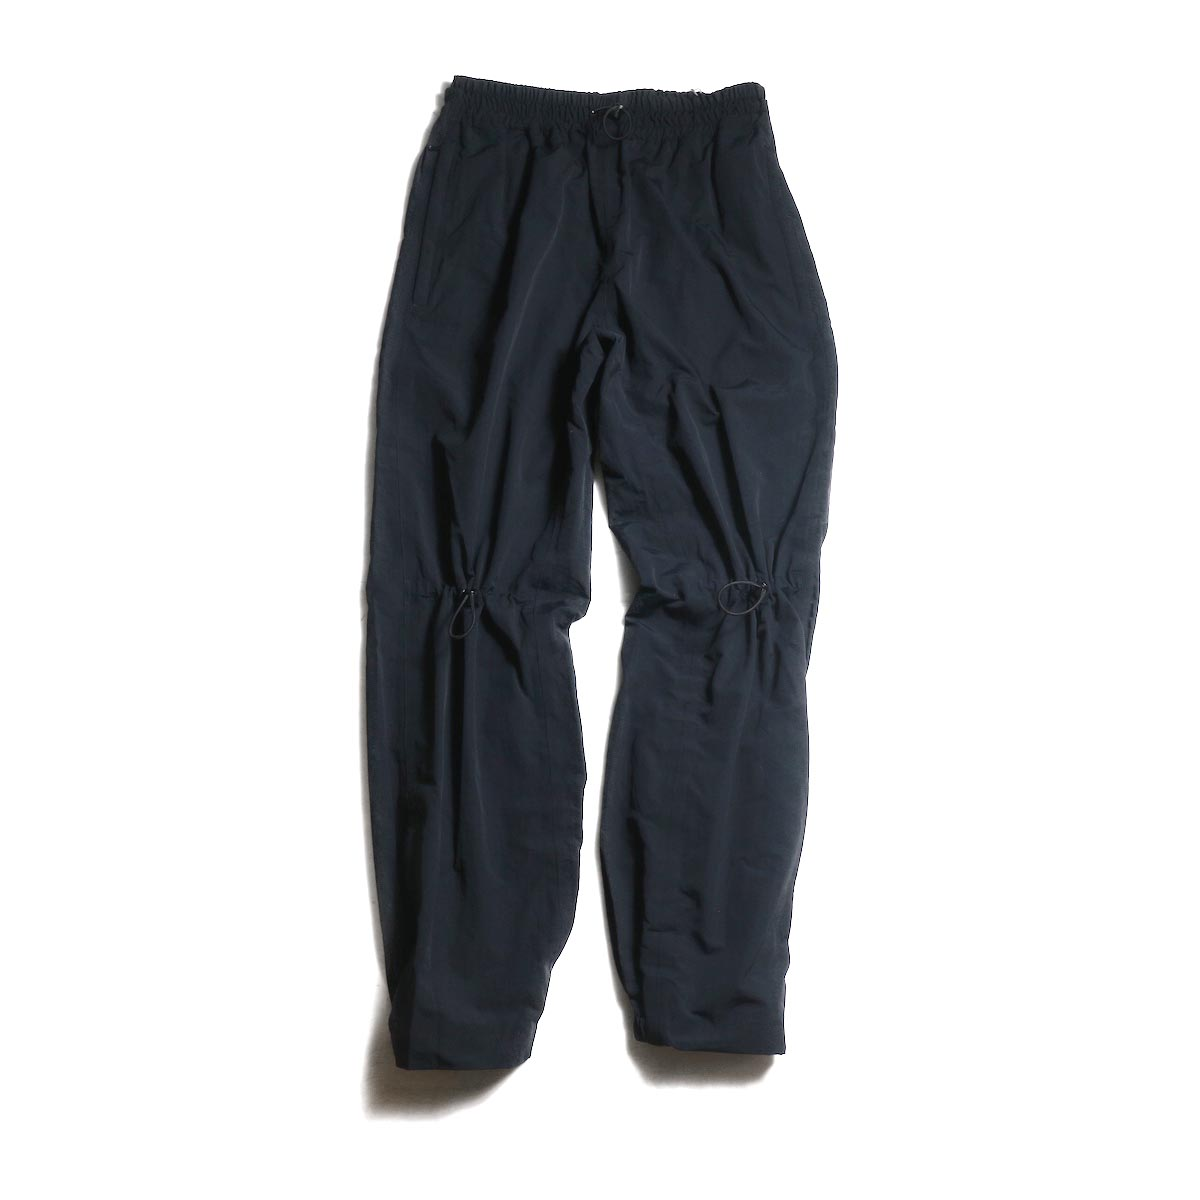 UNUSED / UW0792 Nylon Pants (Black)